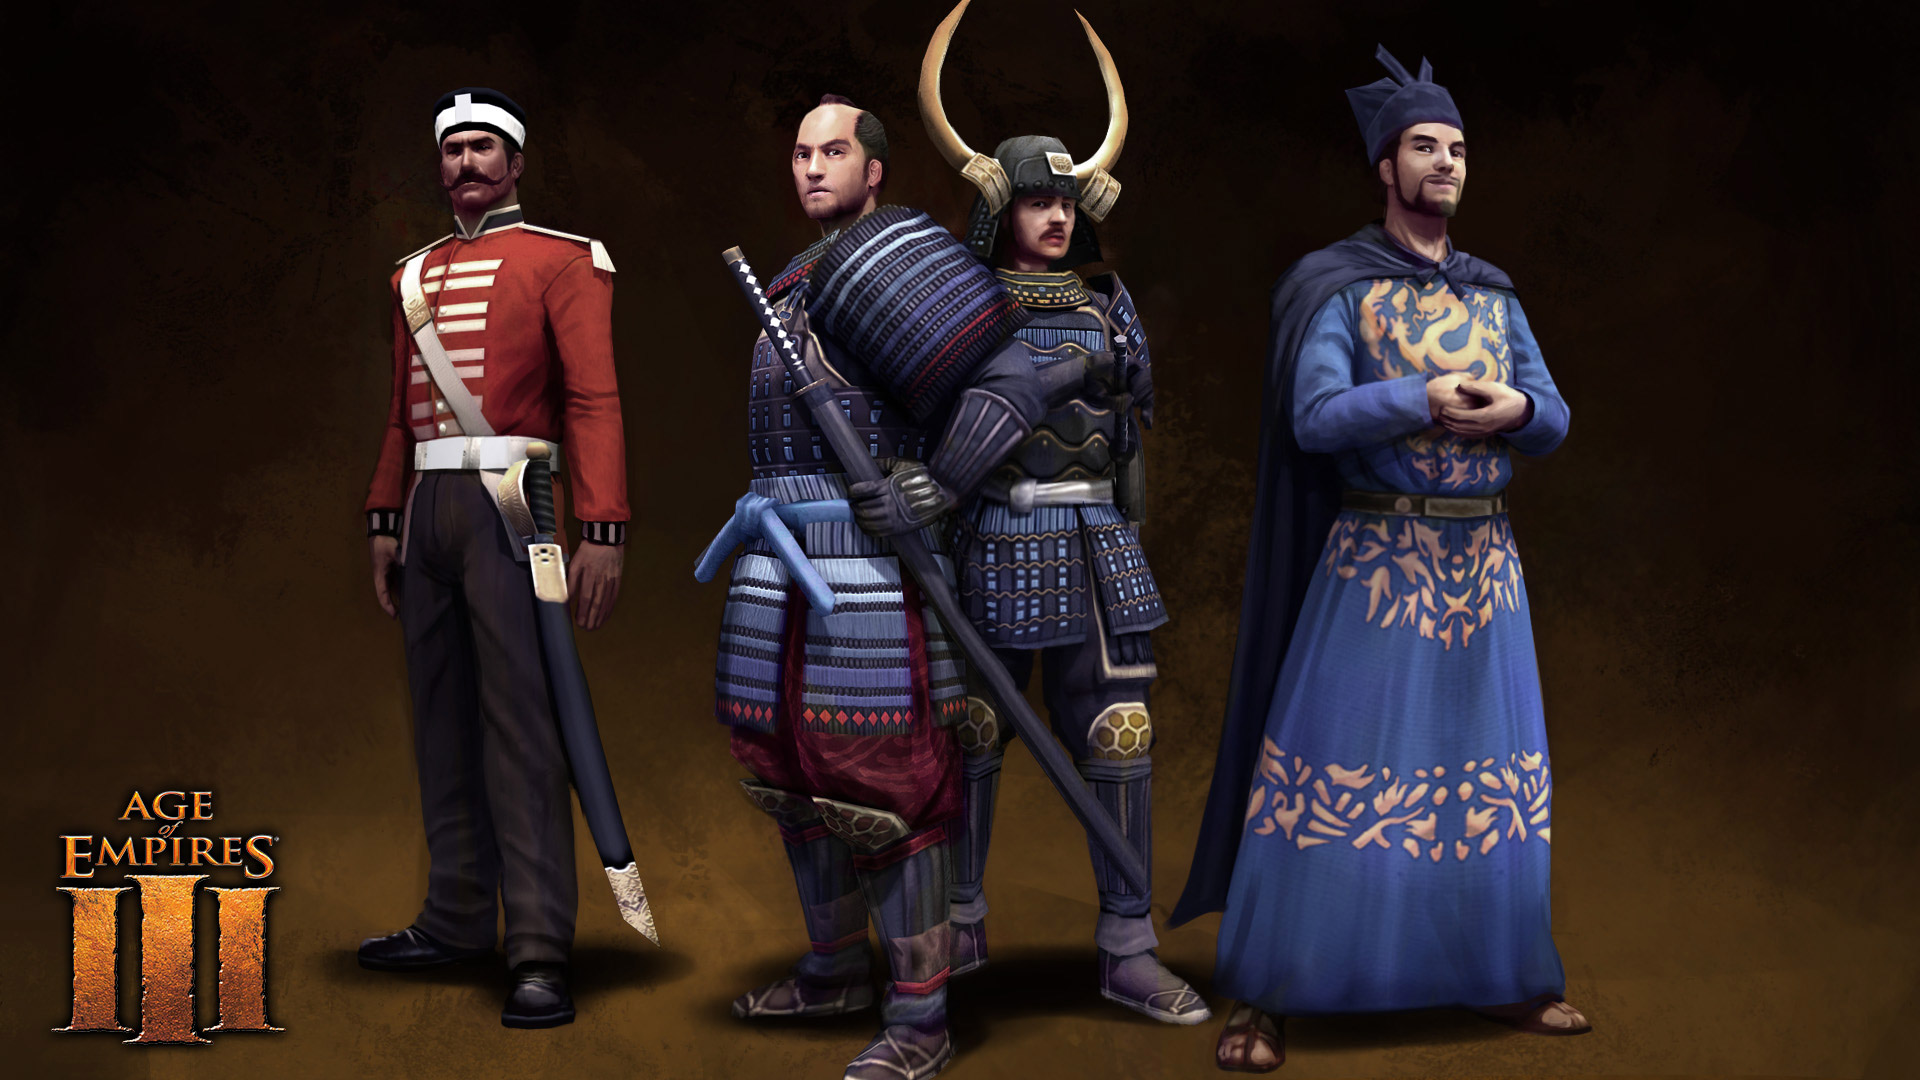 the iii asian empires dynasty Age of